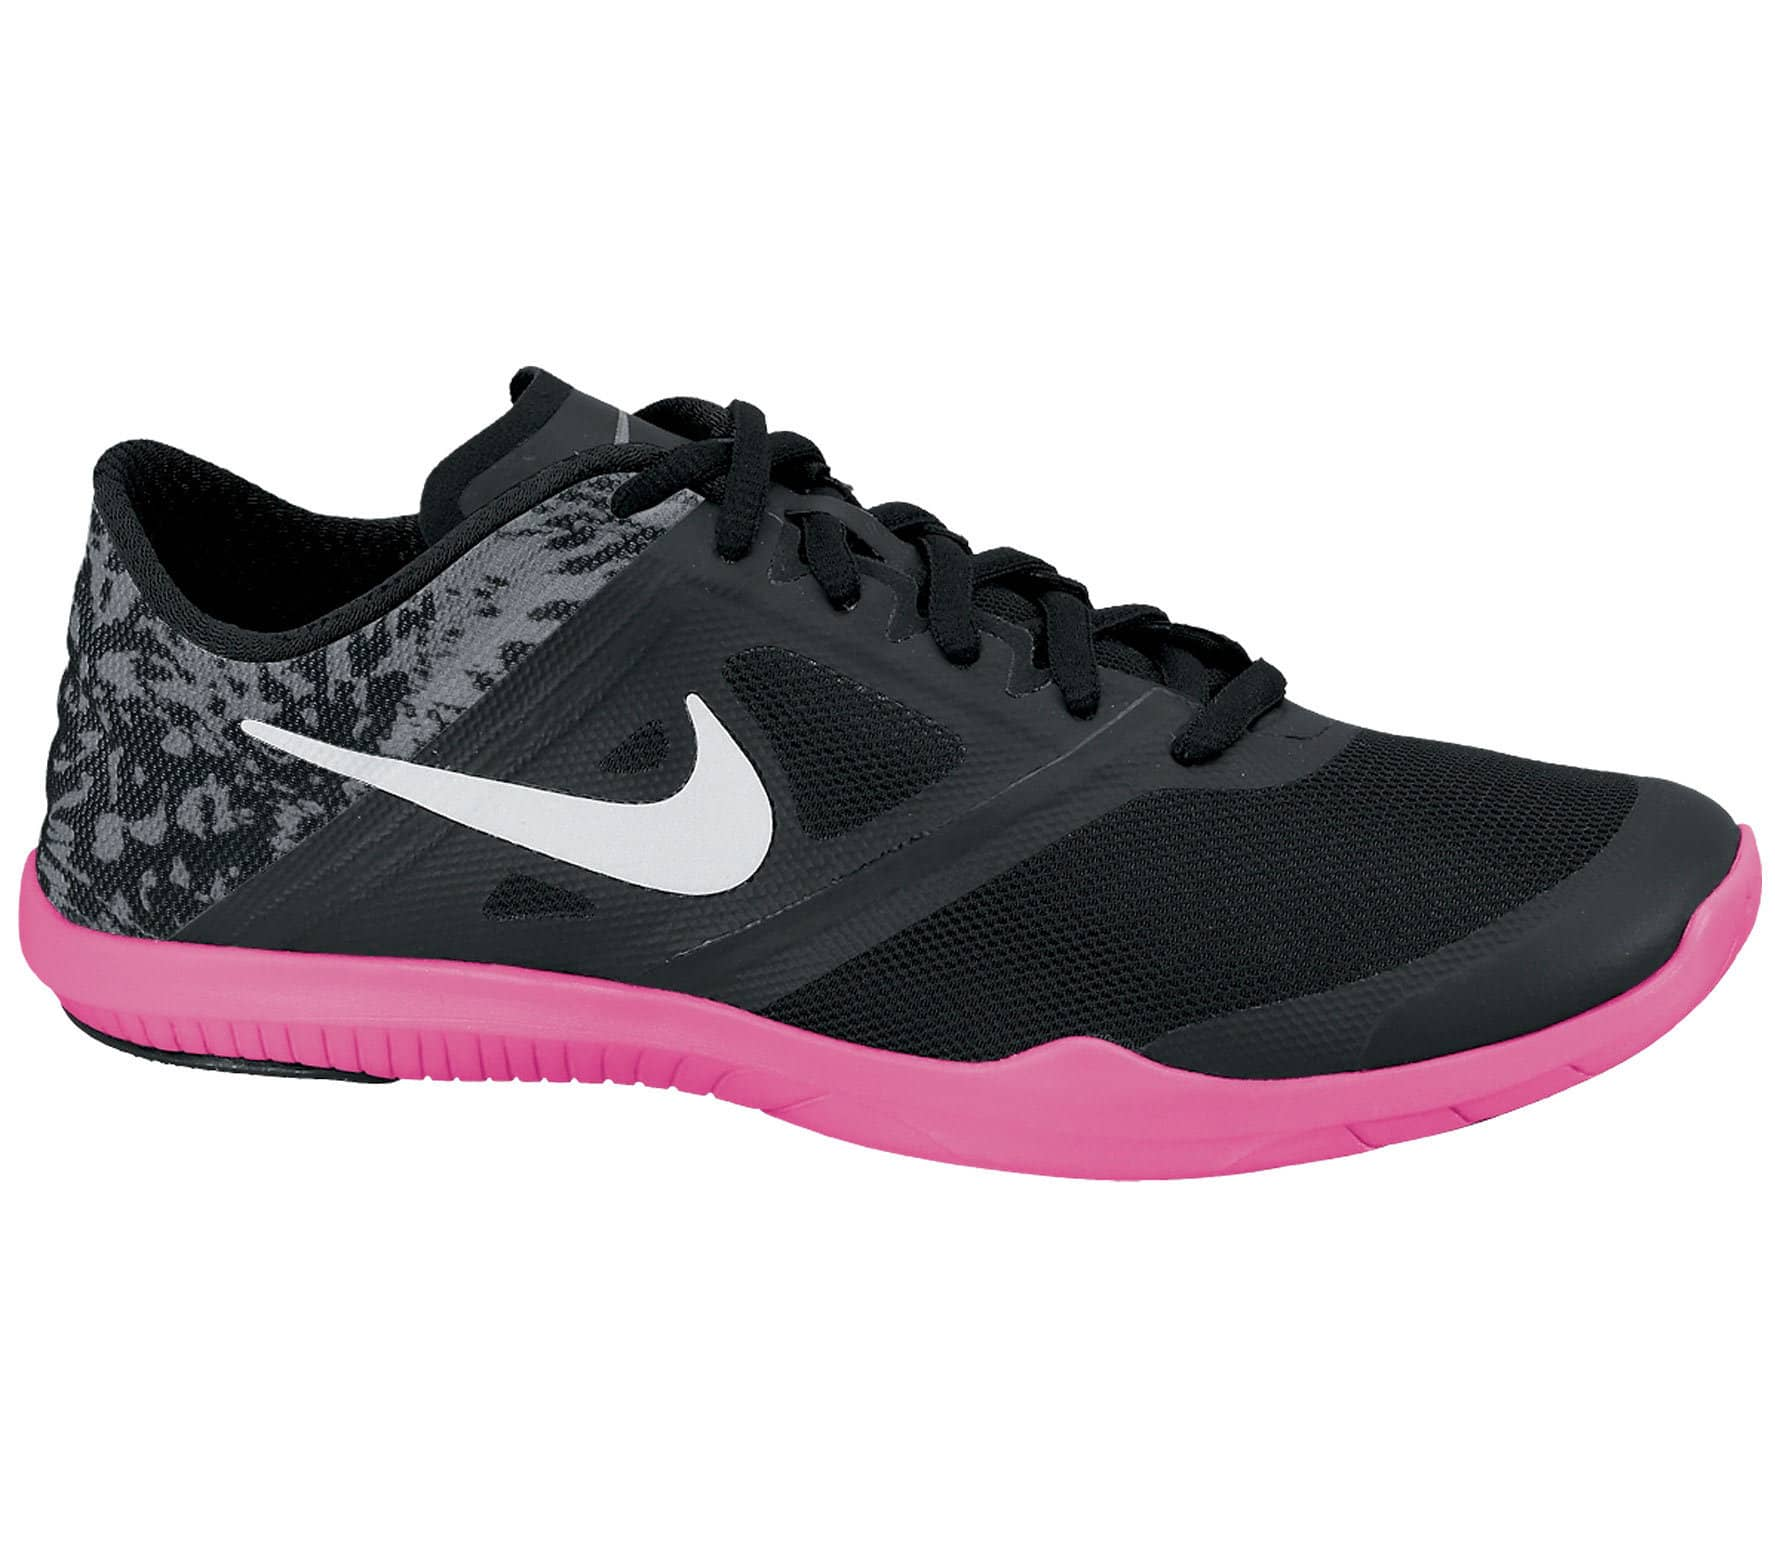 1c6e087cc2 Nike - Studio Trainer 2 Print women s training shoes (black pink ...